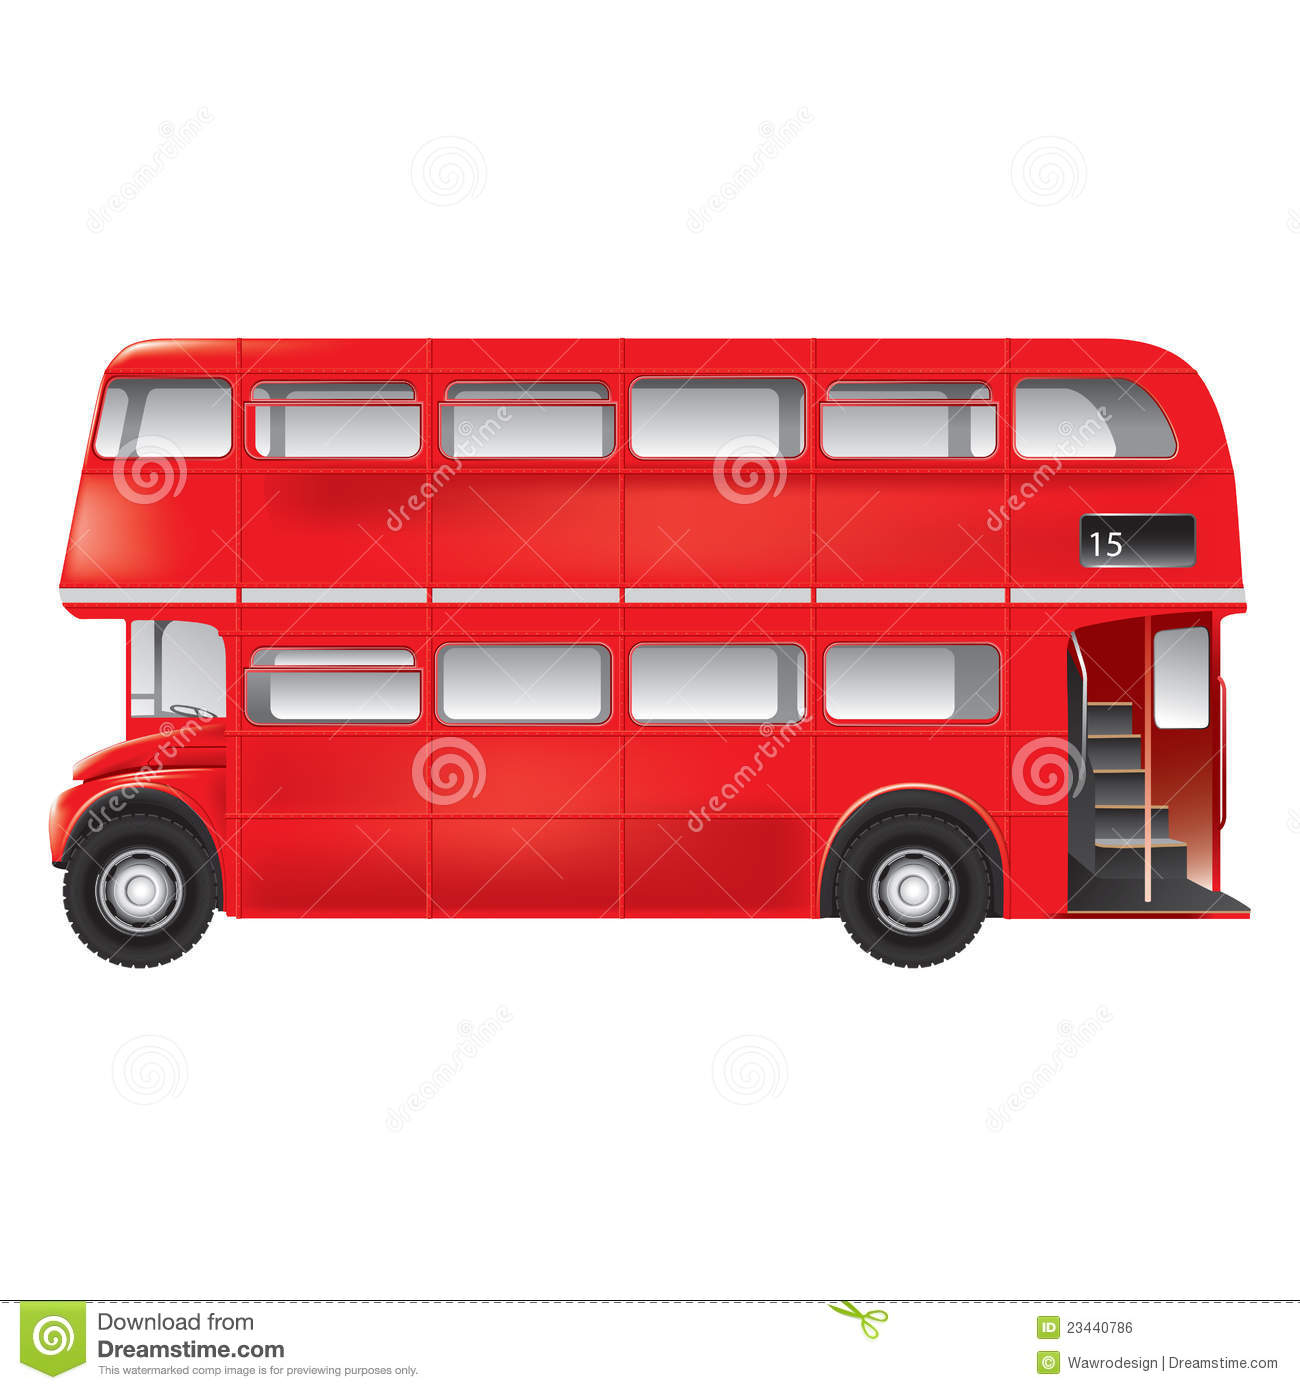 London Bus Clipart London Symbol   Red Bus